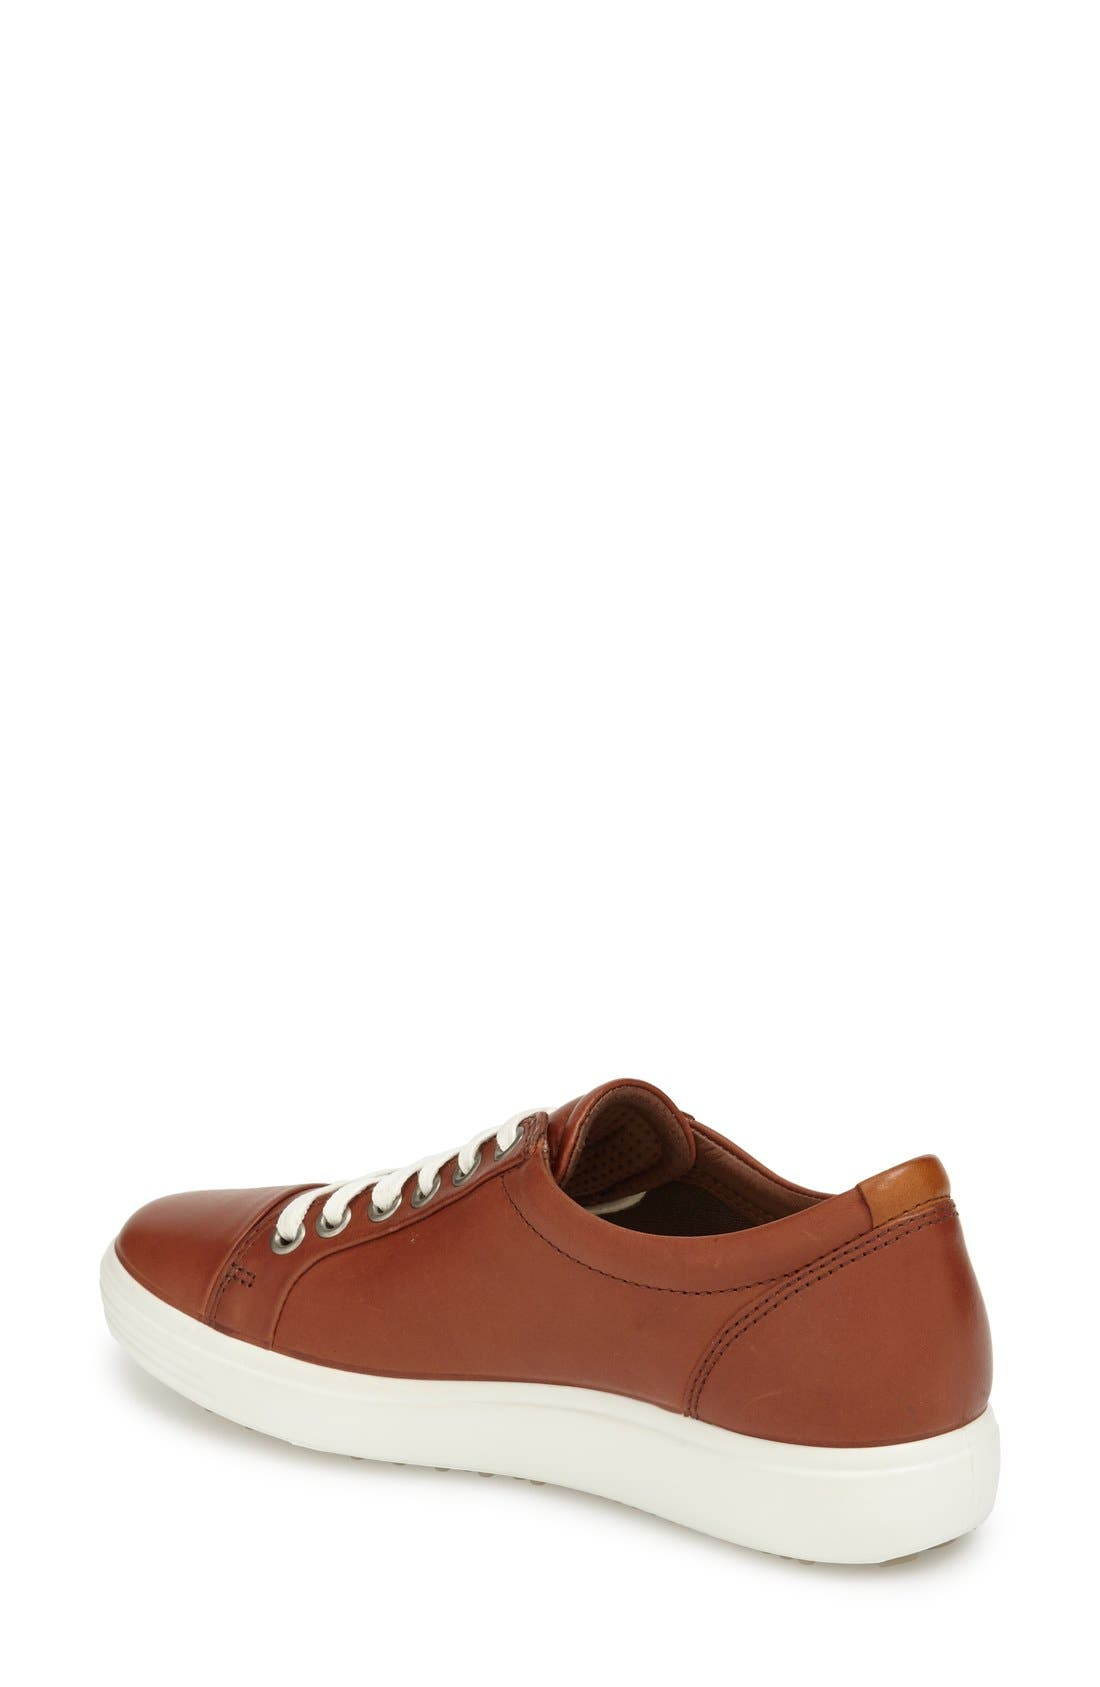 Alternate Image 2  - ECCO 'Soft 7' Cap Toe Sneaker (Women)